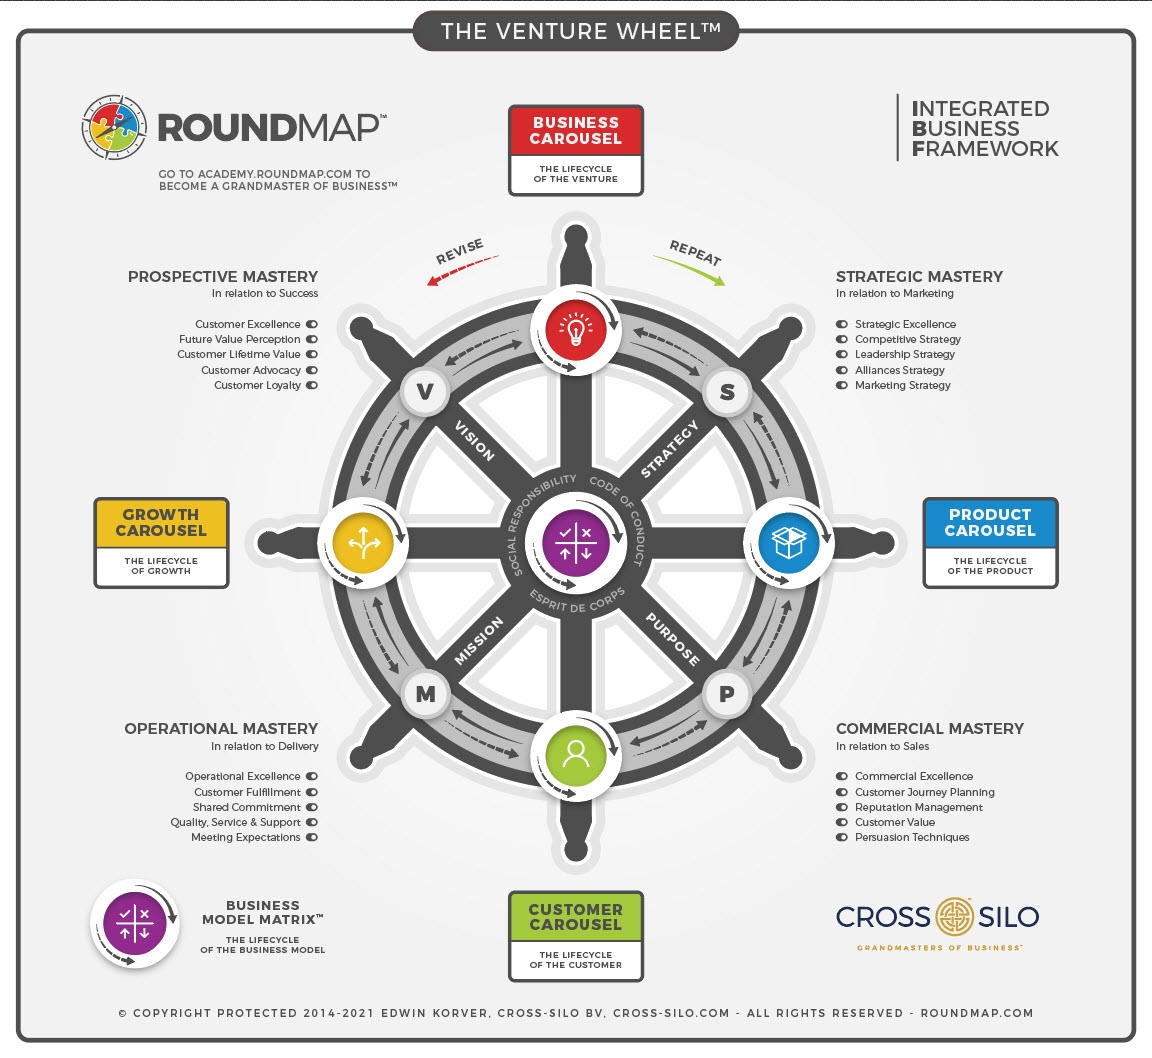 ROUNDMAP_The_Venture_Wheel_Business_Framework_Copyright_Protected_2021